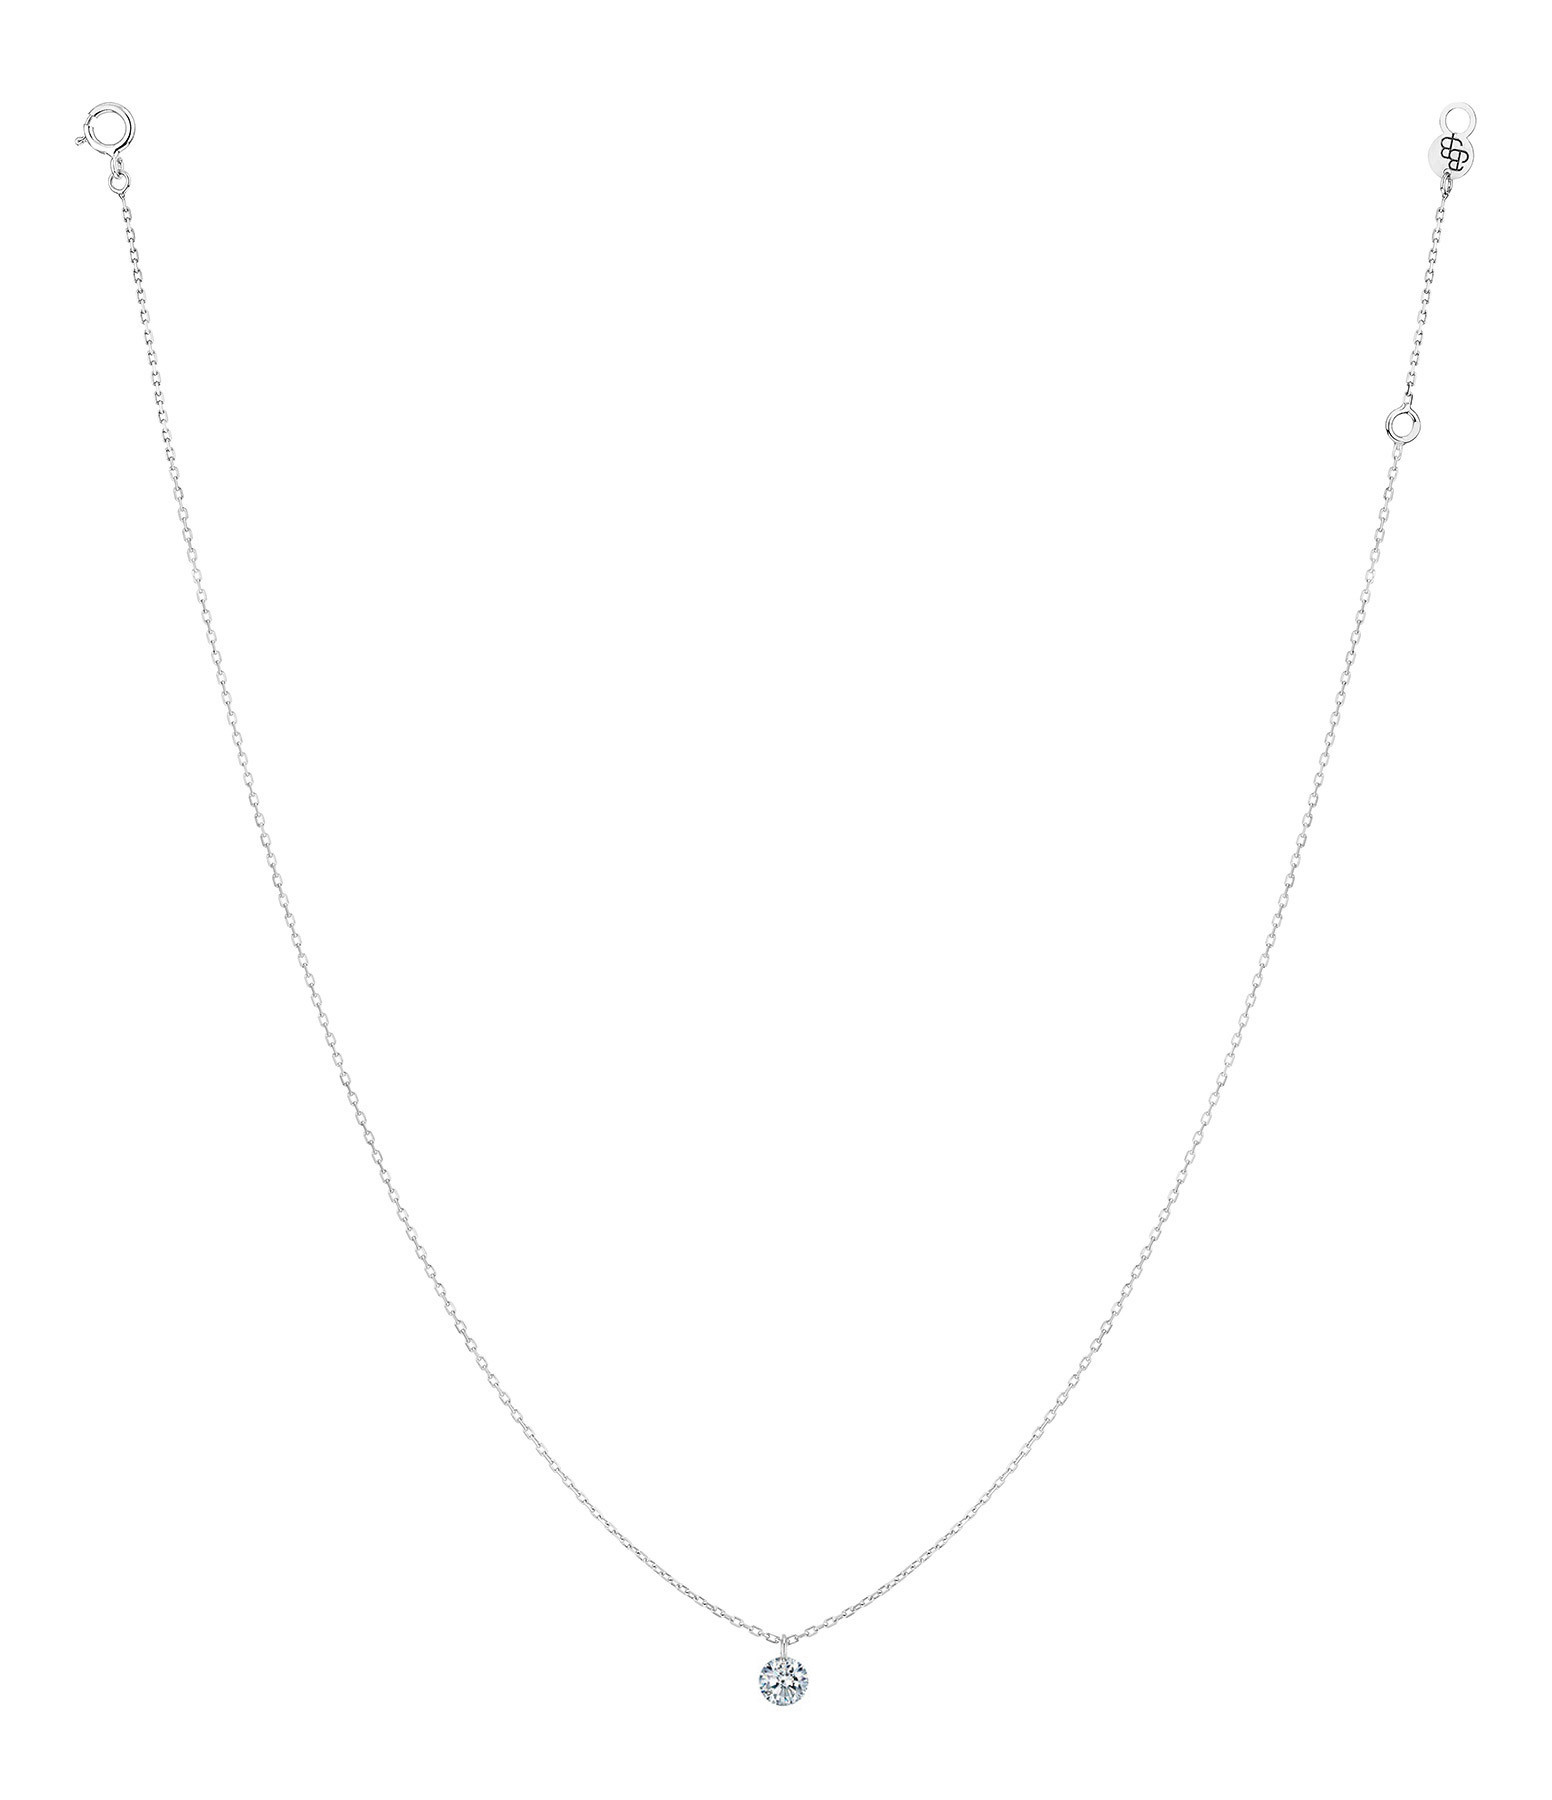 LA BRUNE & LA BLONDE - Collier 360° Diamant Brillant 0,20 Or Blanc